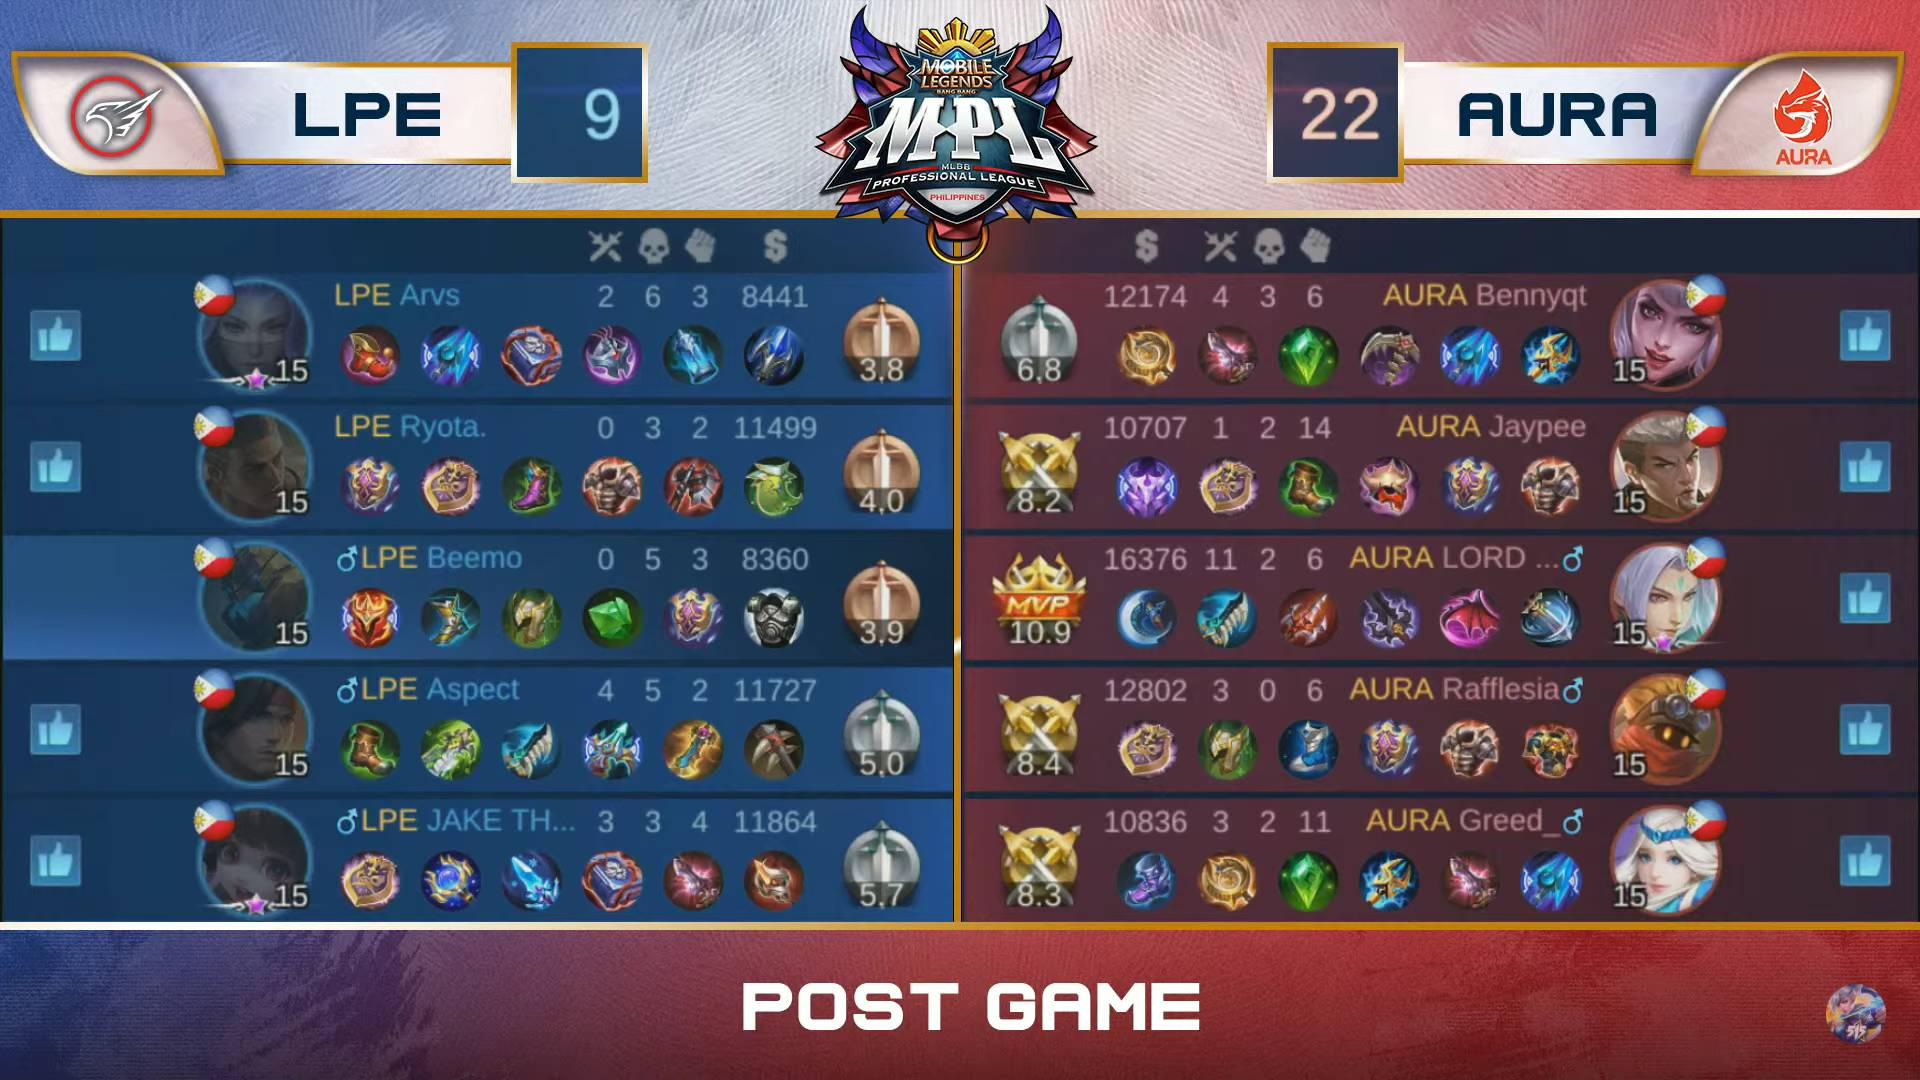 MPL-PH-7-Aura-def-Playbook-Game-1 Bennyqt's Alice powers Aura PH's sweep of Playbook in MPL PH ESports Mobile Legends MPL-PH News  - philippine sports news